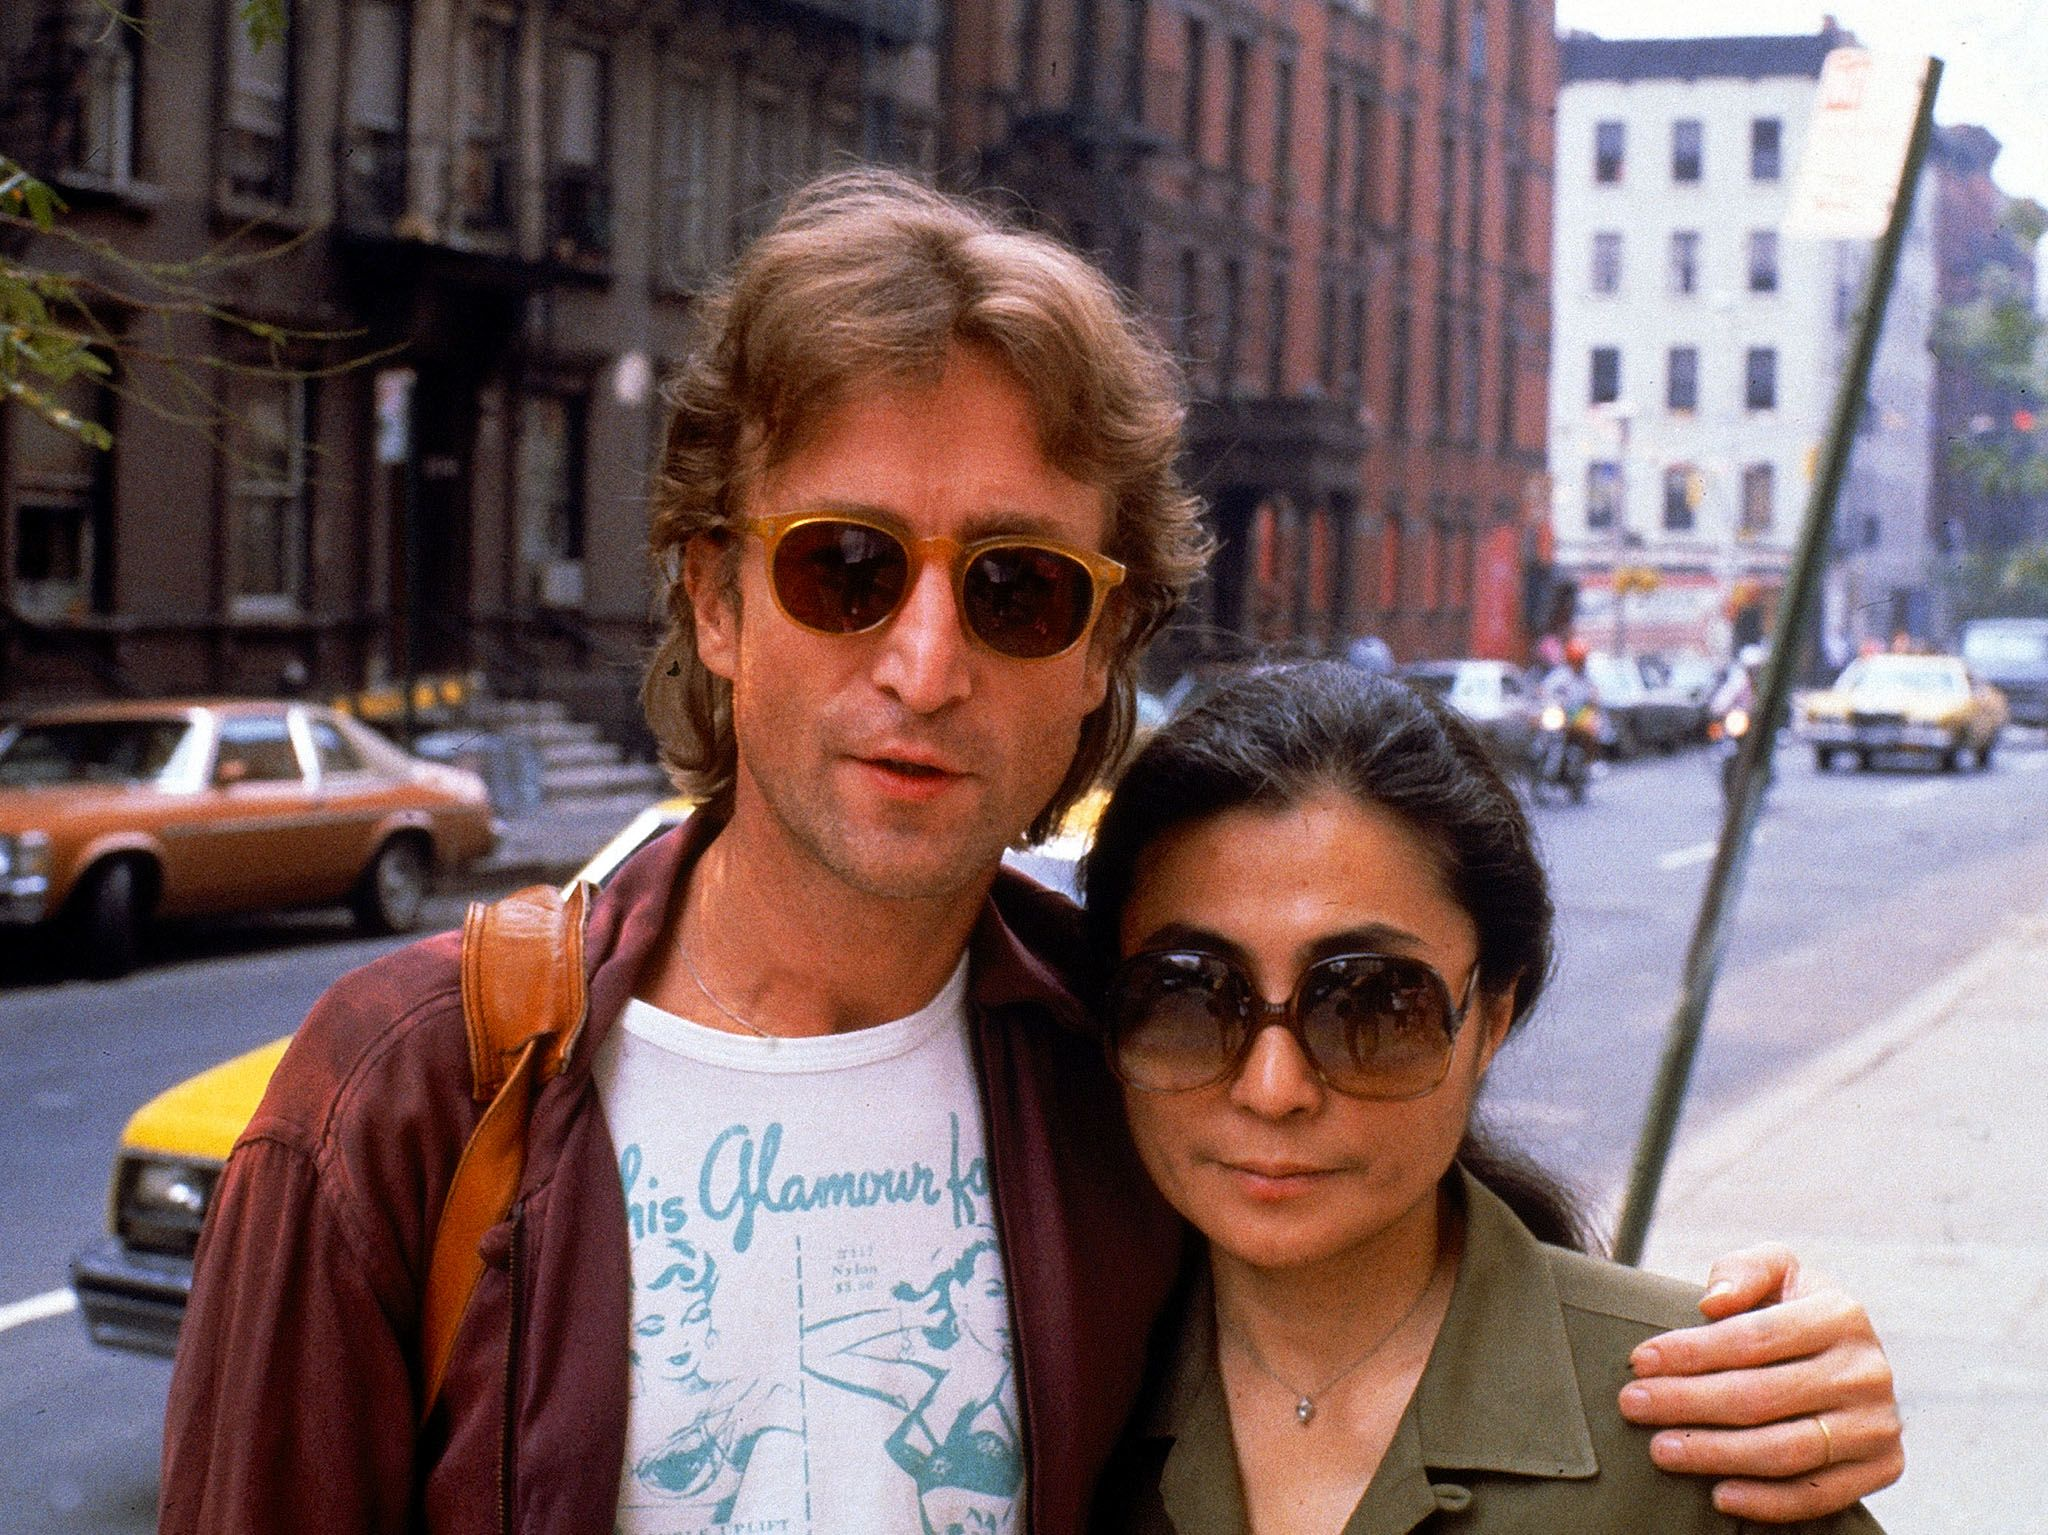 (L to R) Rock star John Lennon and  his wife Yoko Ono. This image is from Decades Remixed: The... [Photo of the day - October 2018]